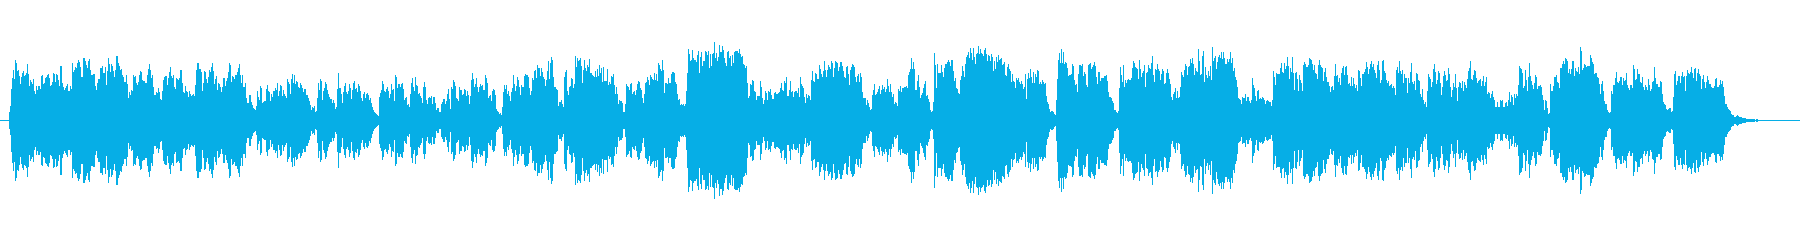 Refreshing fantasy female voice sound's reproduced waveform